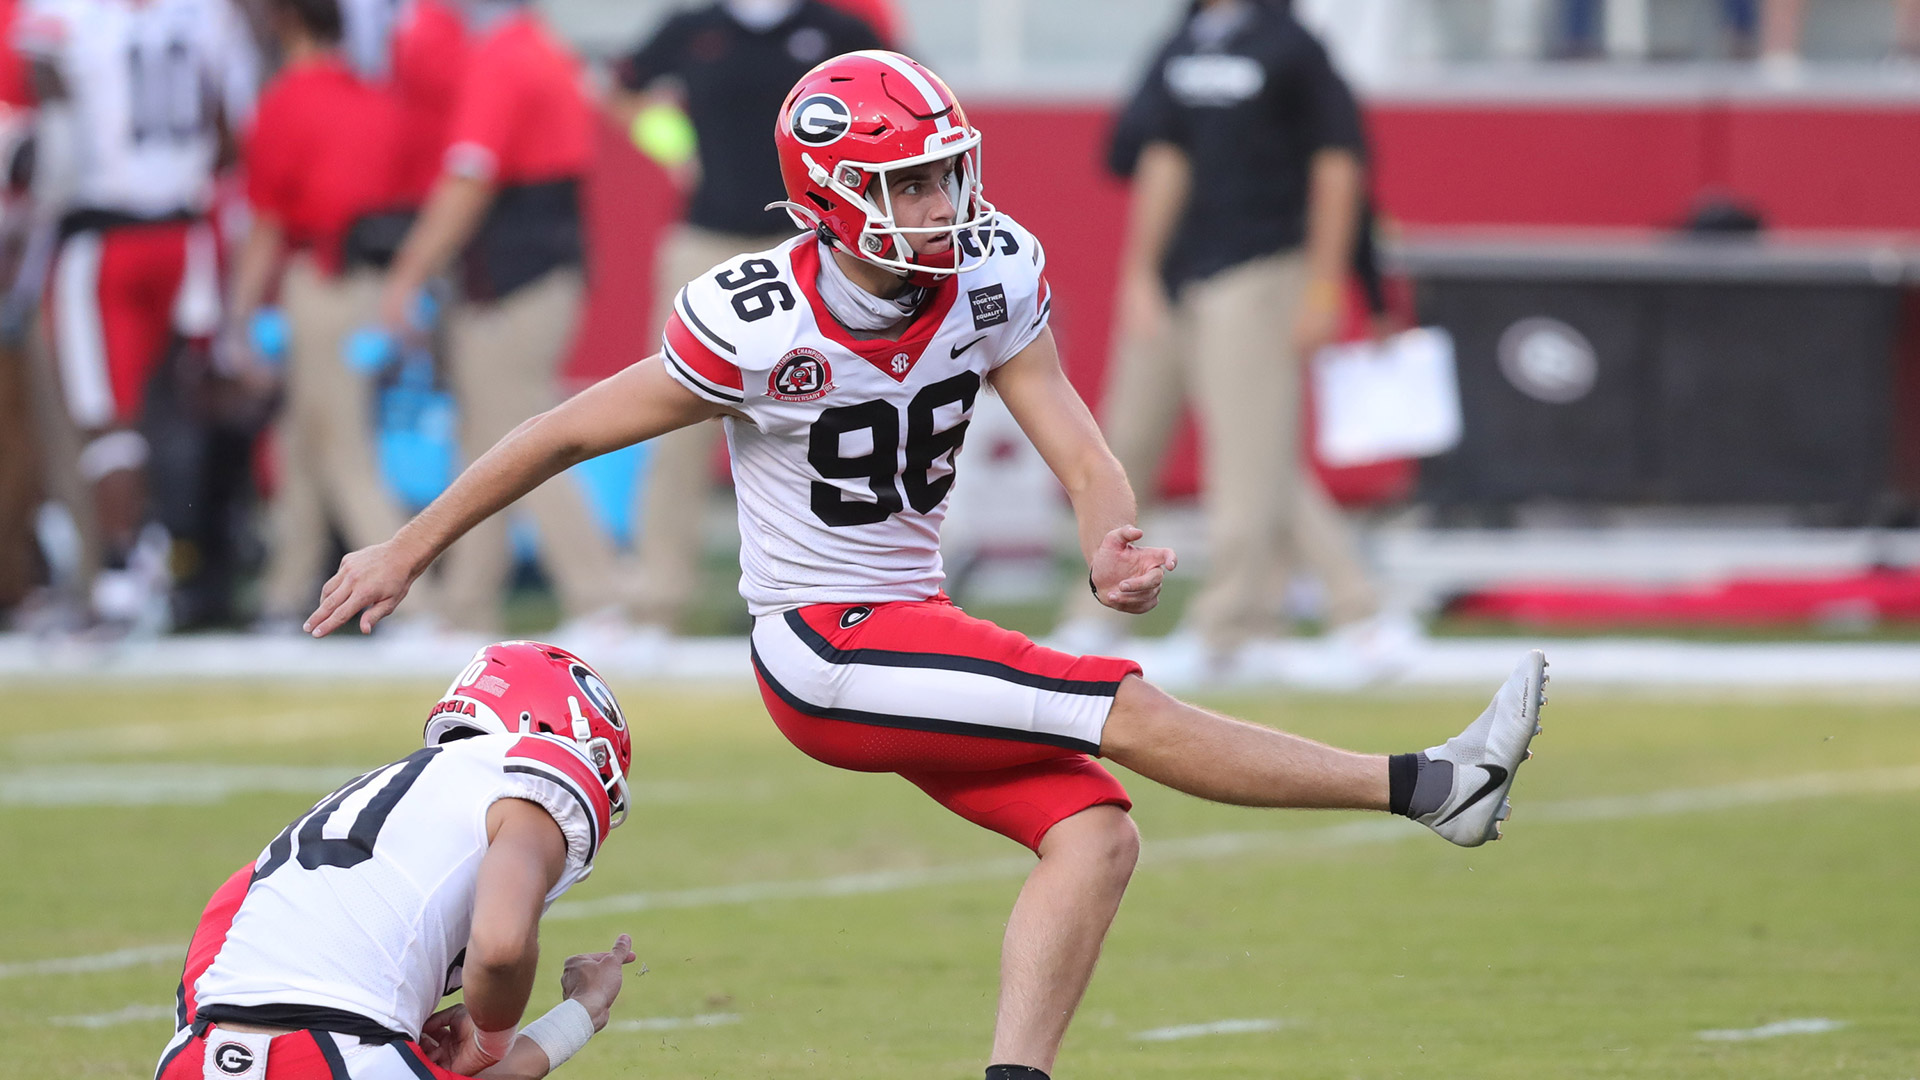 Jack Podlesny 2020 Football University Of Georgia Athletics